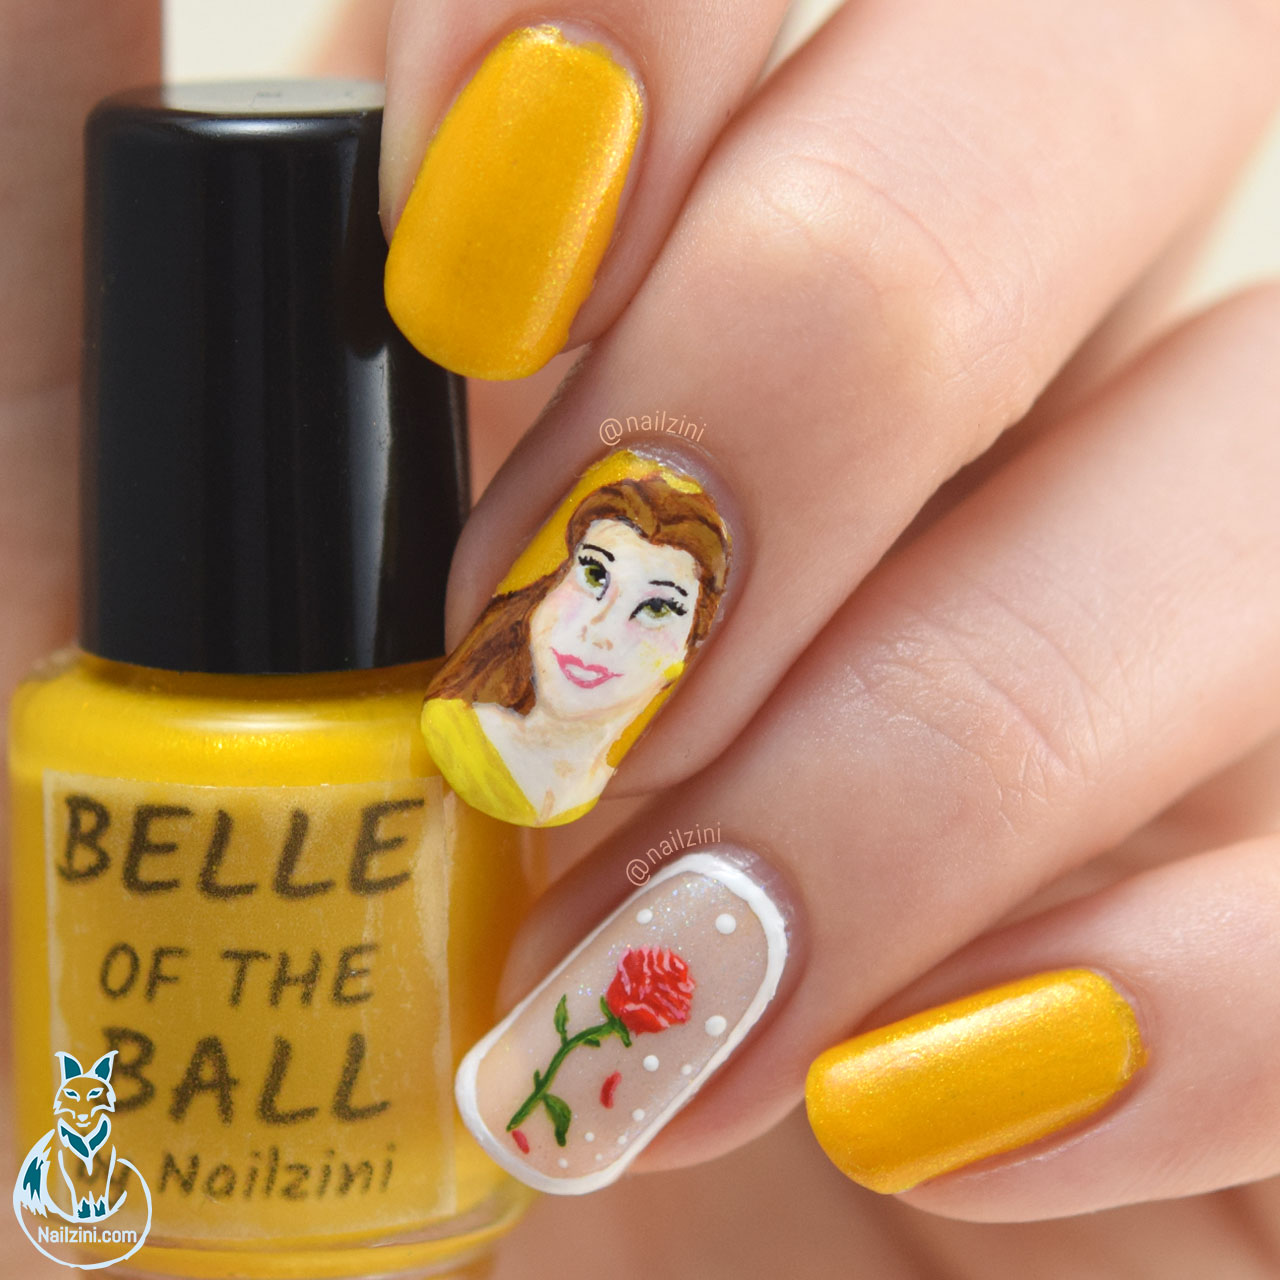 Beauty and the Beast Belle Roses Nail Art Nailzini